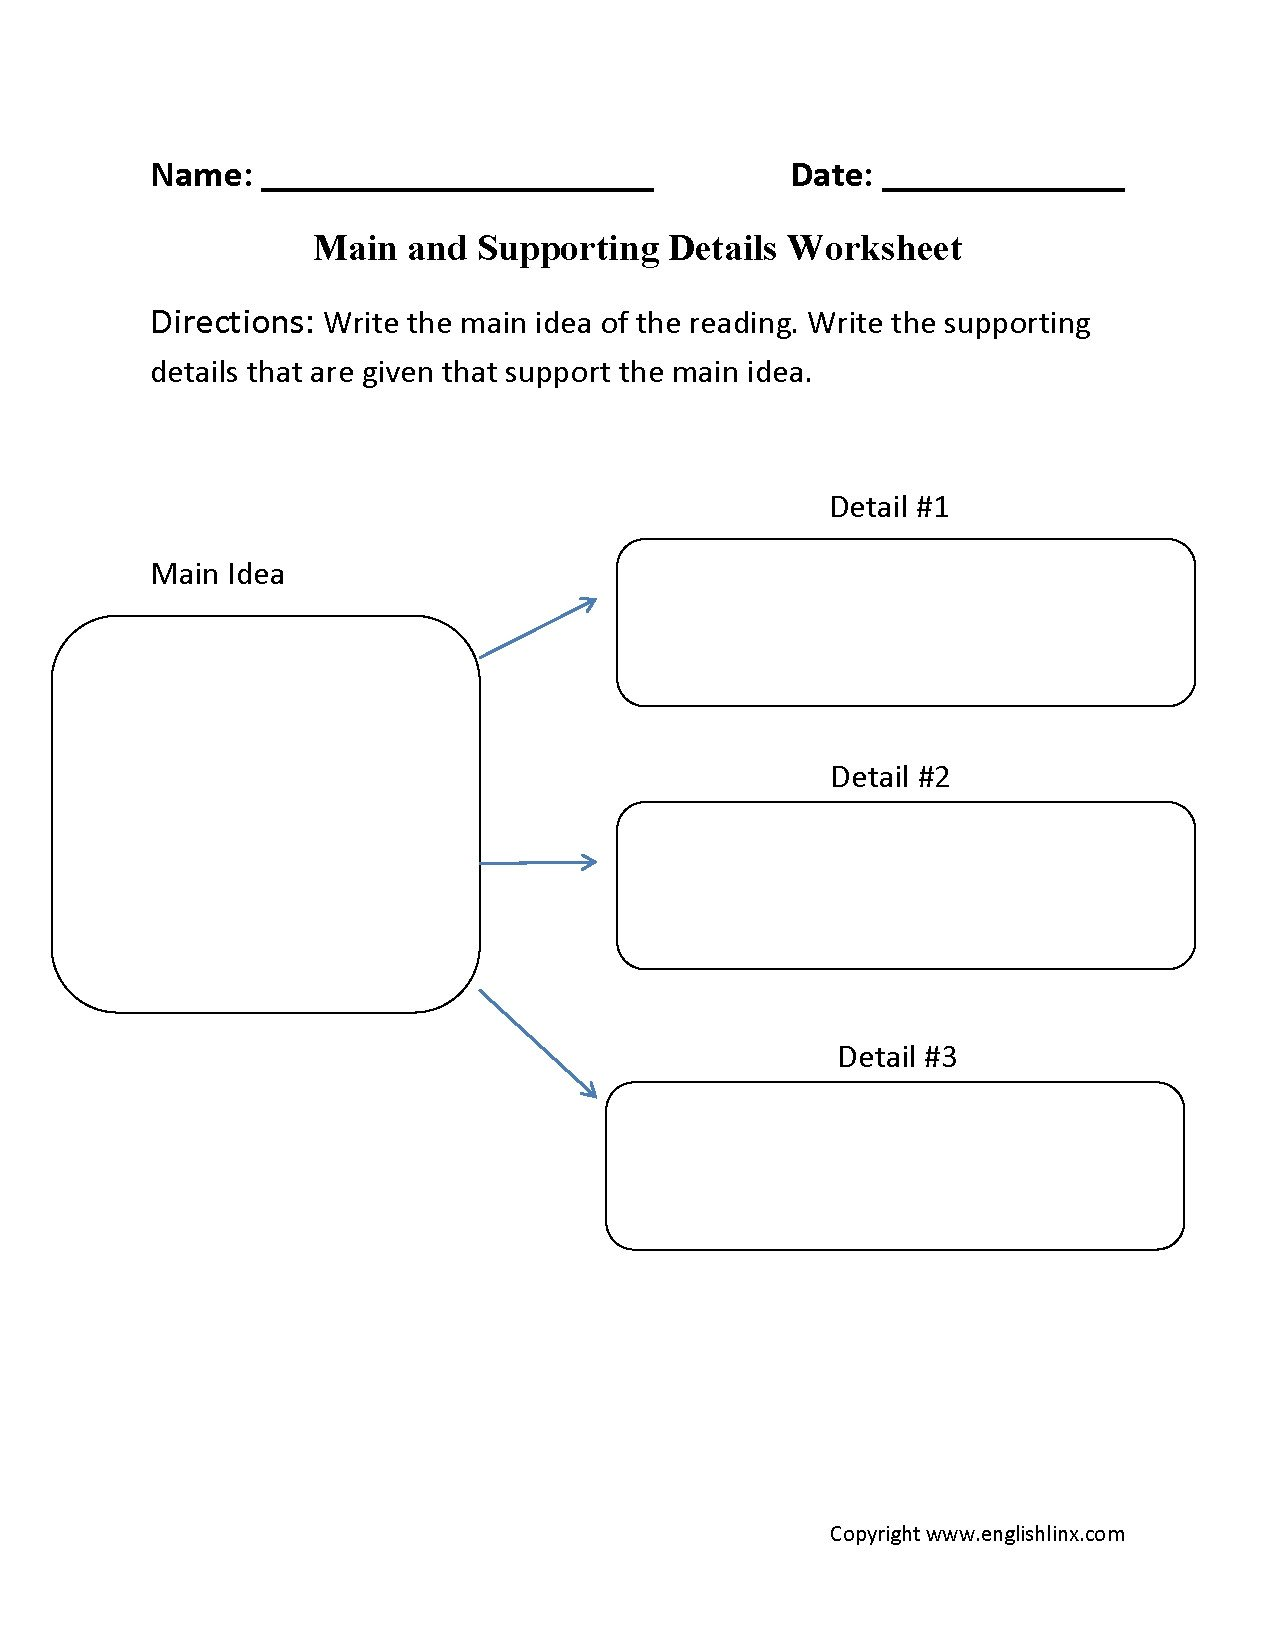 Supporting Details Worksheet Main Idea and Supporting Details Exercises